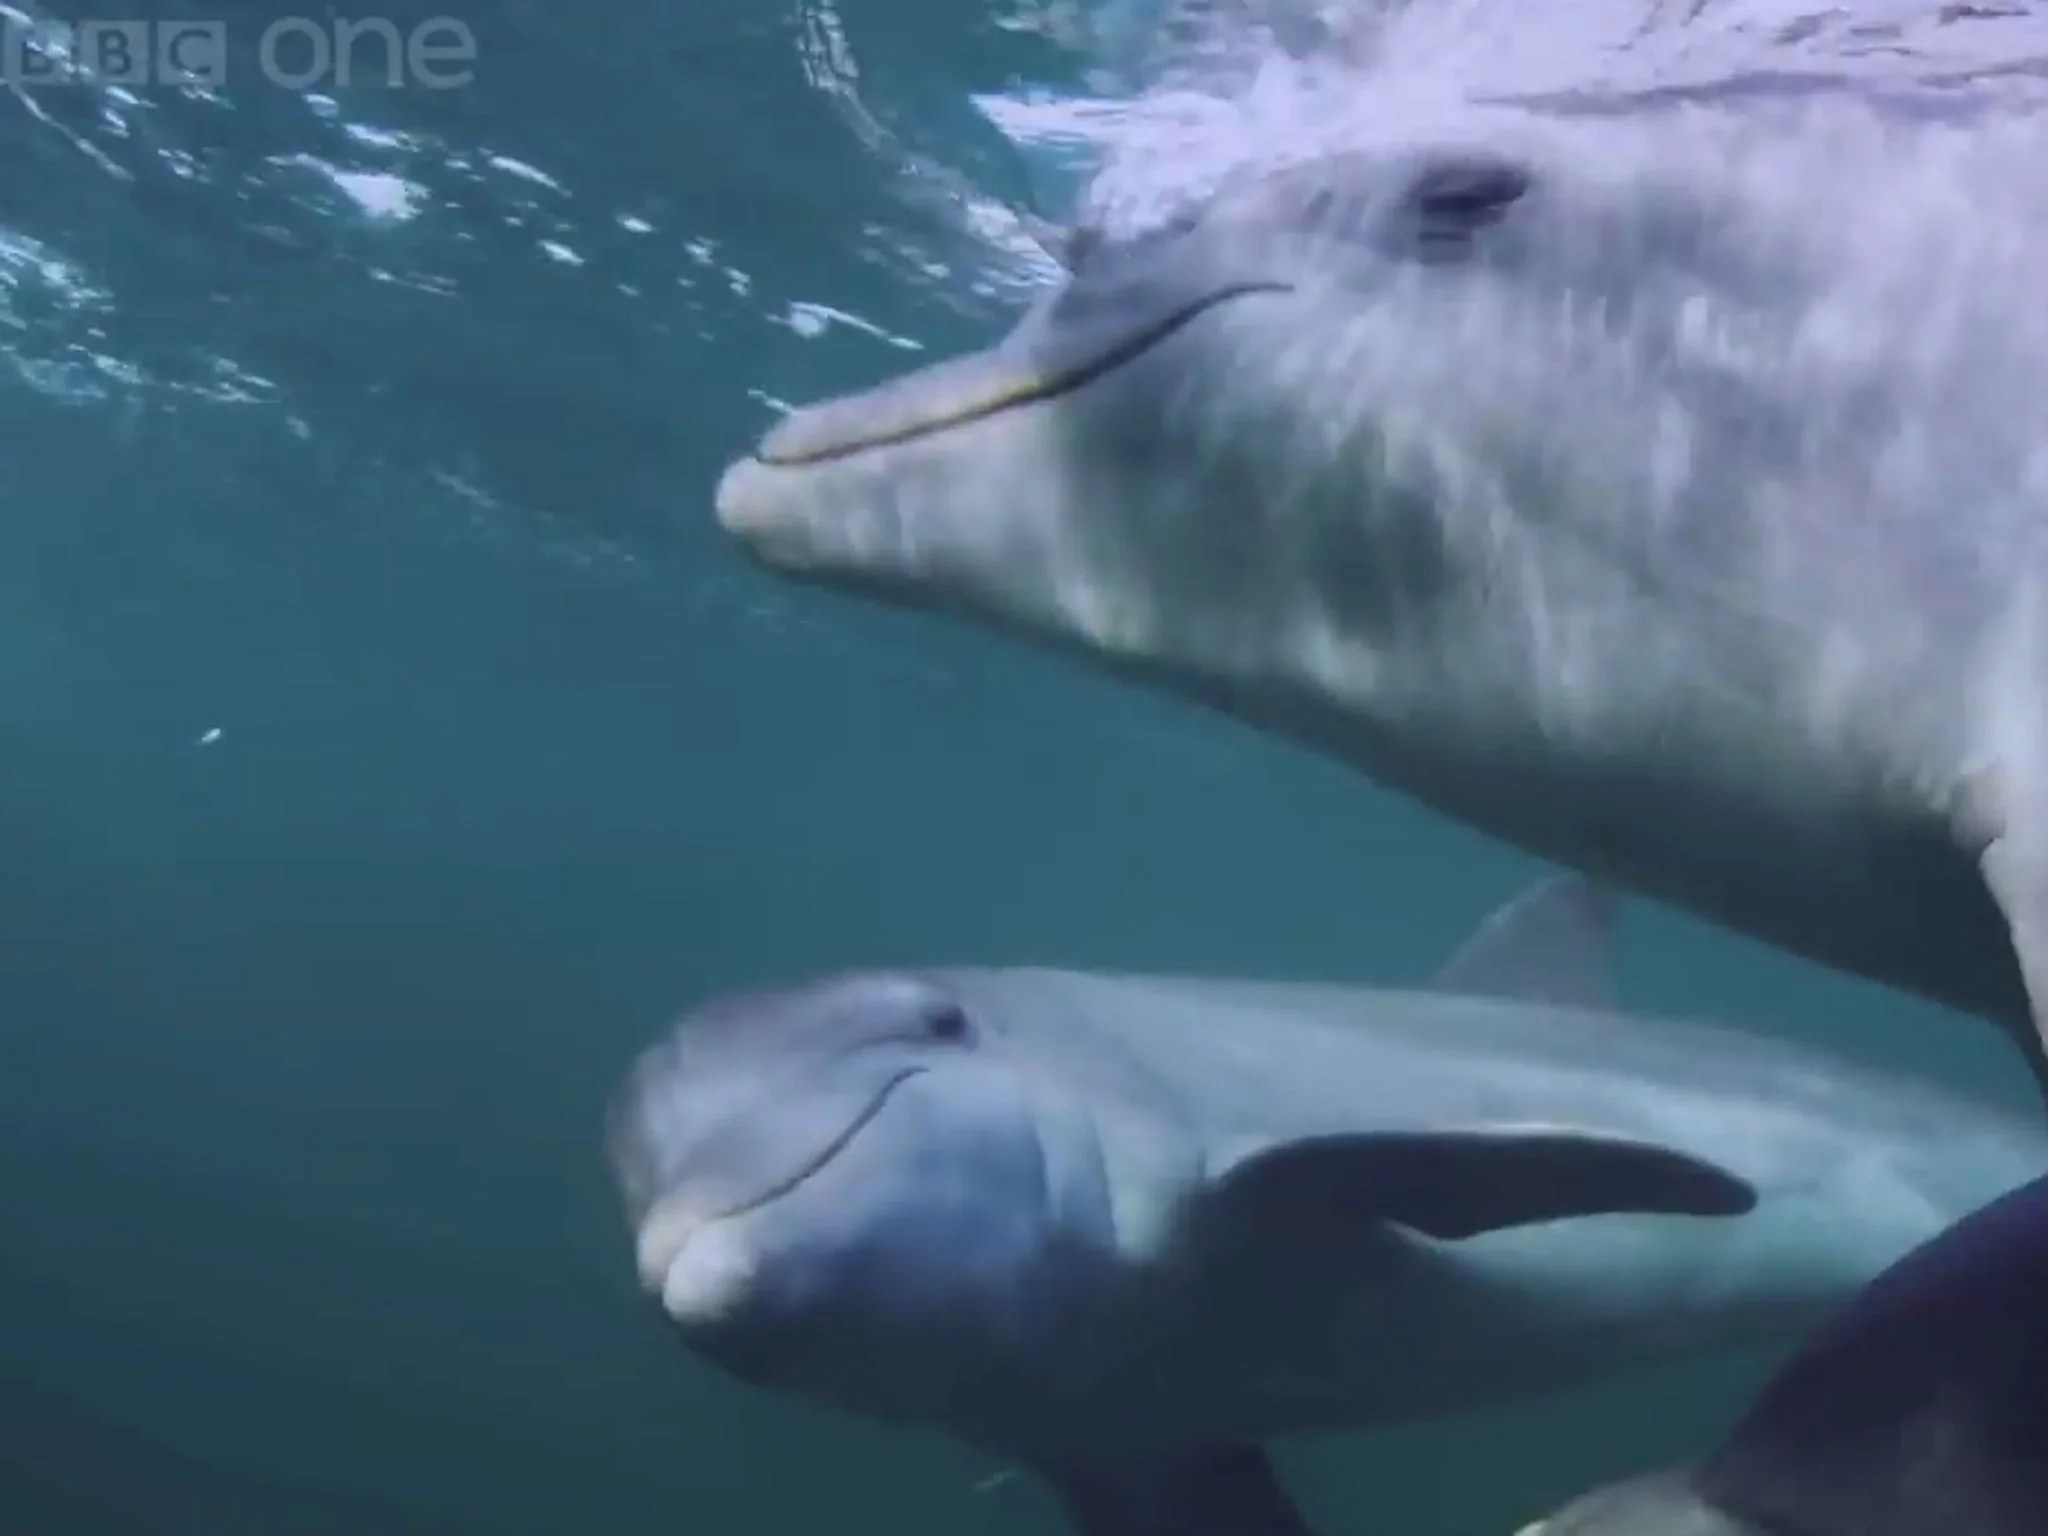 Dolphins Deliberately Get High On Puffer Fish Nerve Toxins By Carefully Chewing And Passing